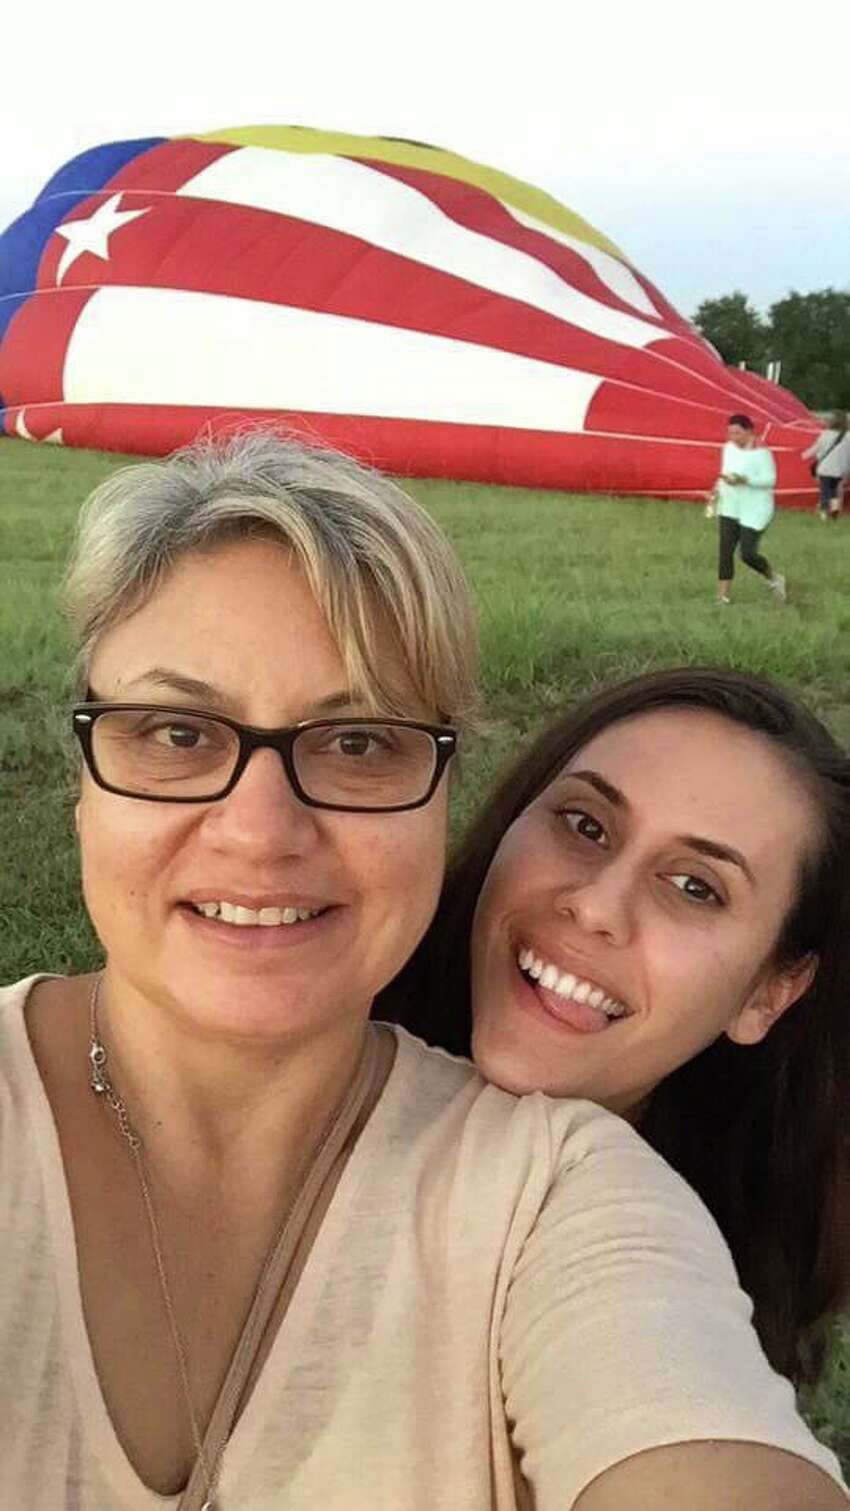 Lorilee, left, and Paige Brabson, right, were killed July 30 in a hot air balloon crash in Lockhart. The father of Paige Brabson's daughter wrote on Facebook July 31 saying,